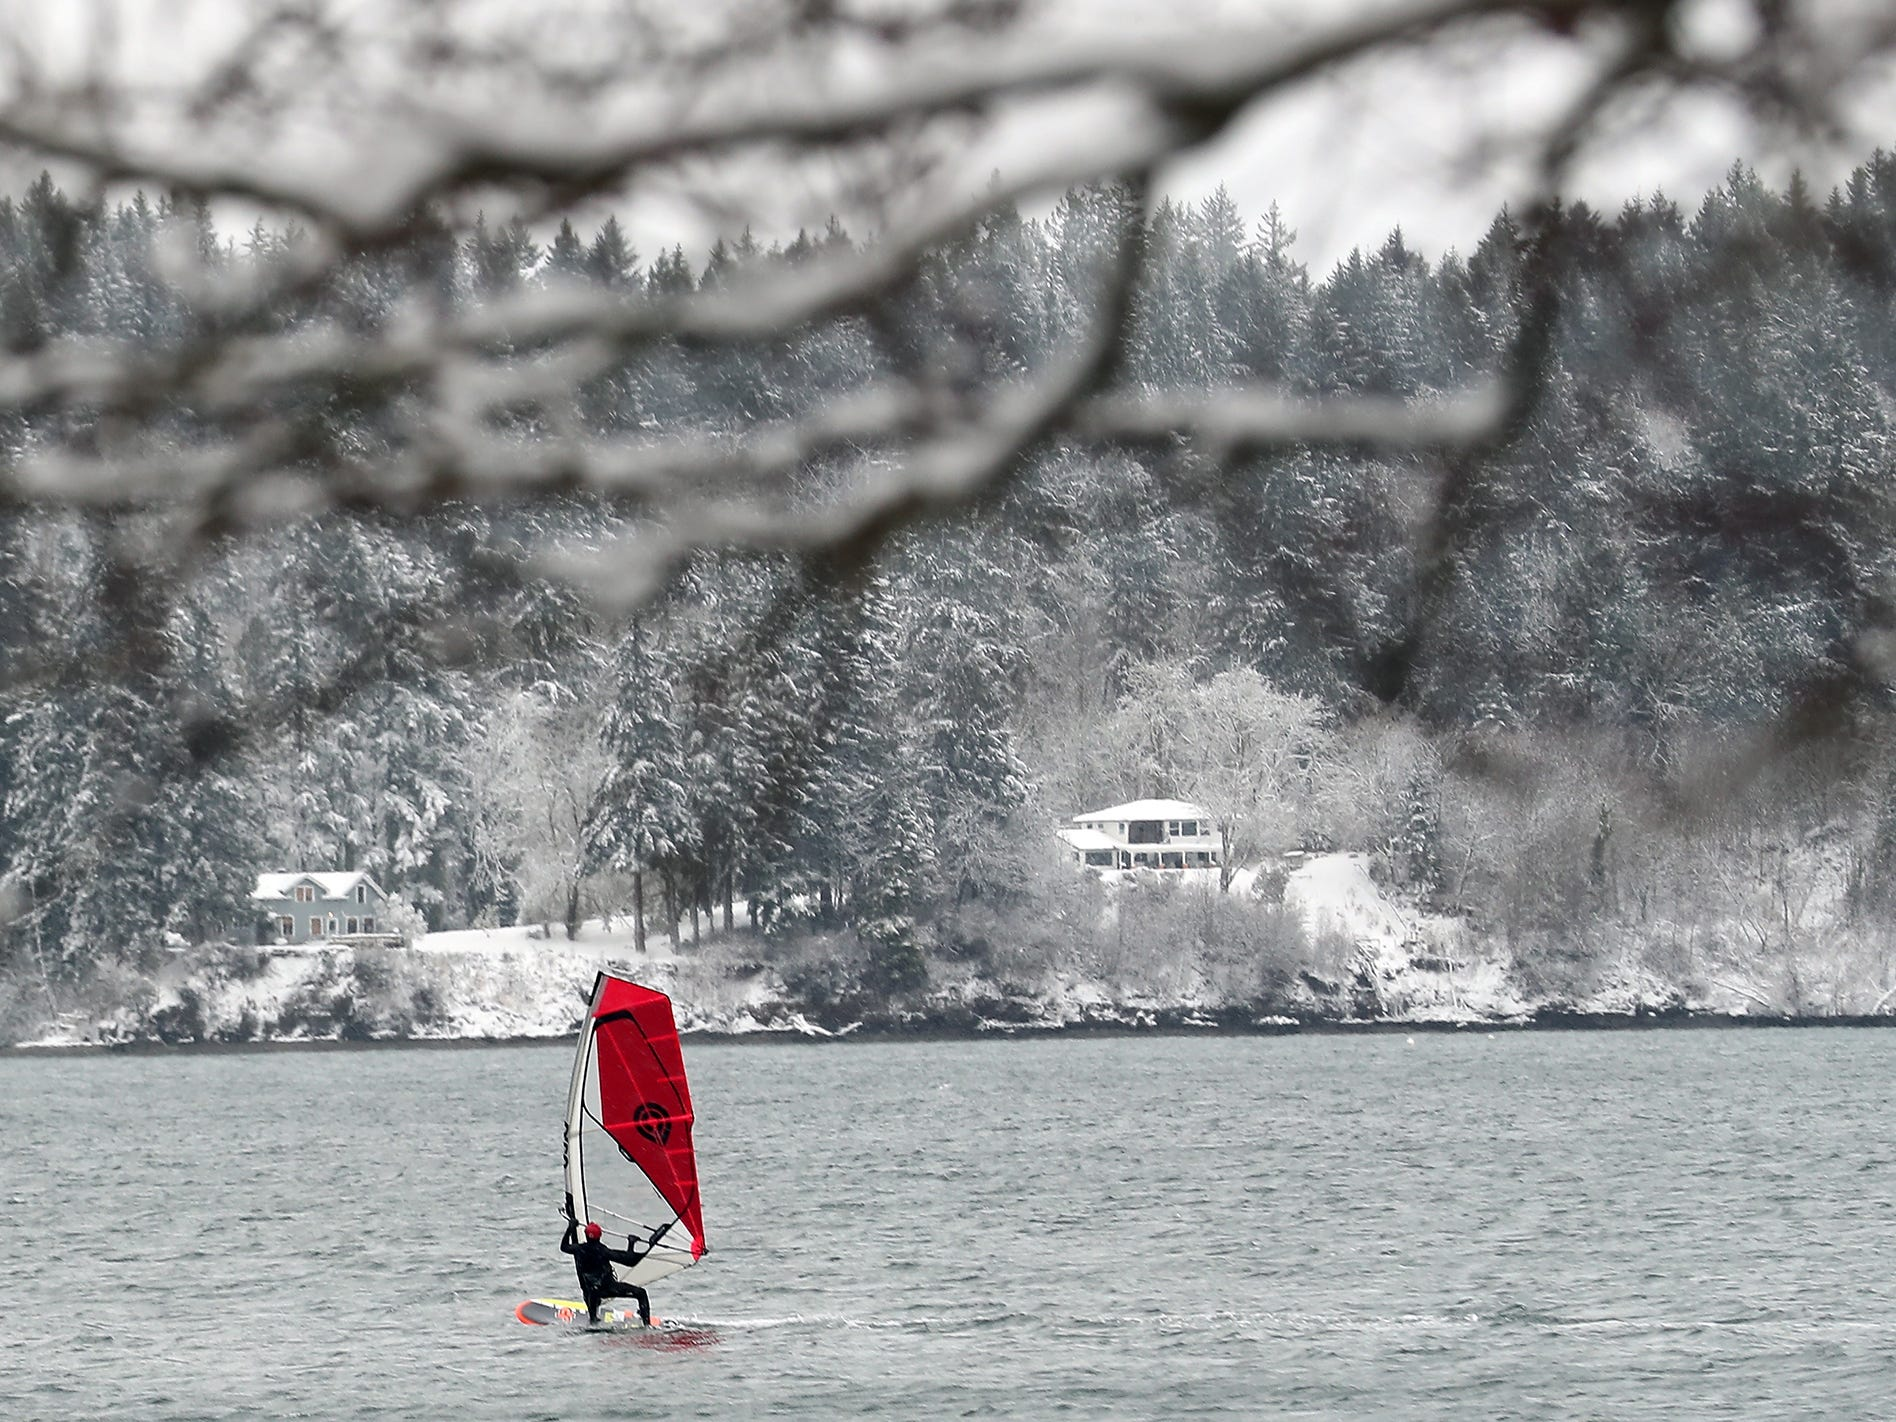 A windsurfer braves the snow and cold to ride along Silverdale Waterfront Park on Saturday, February 9, 2019.